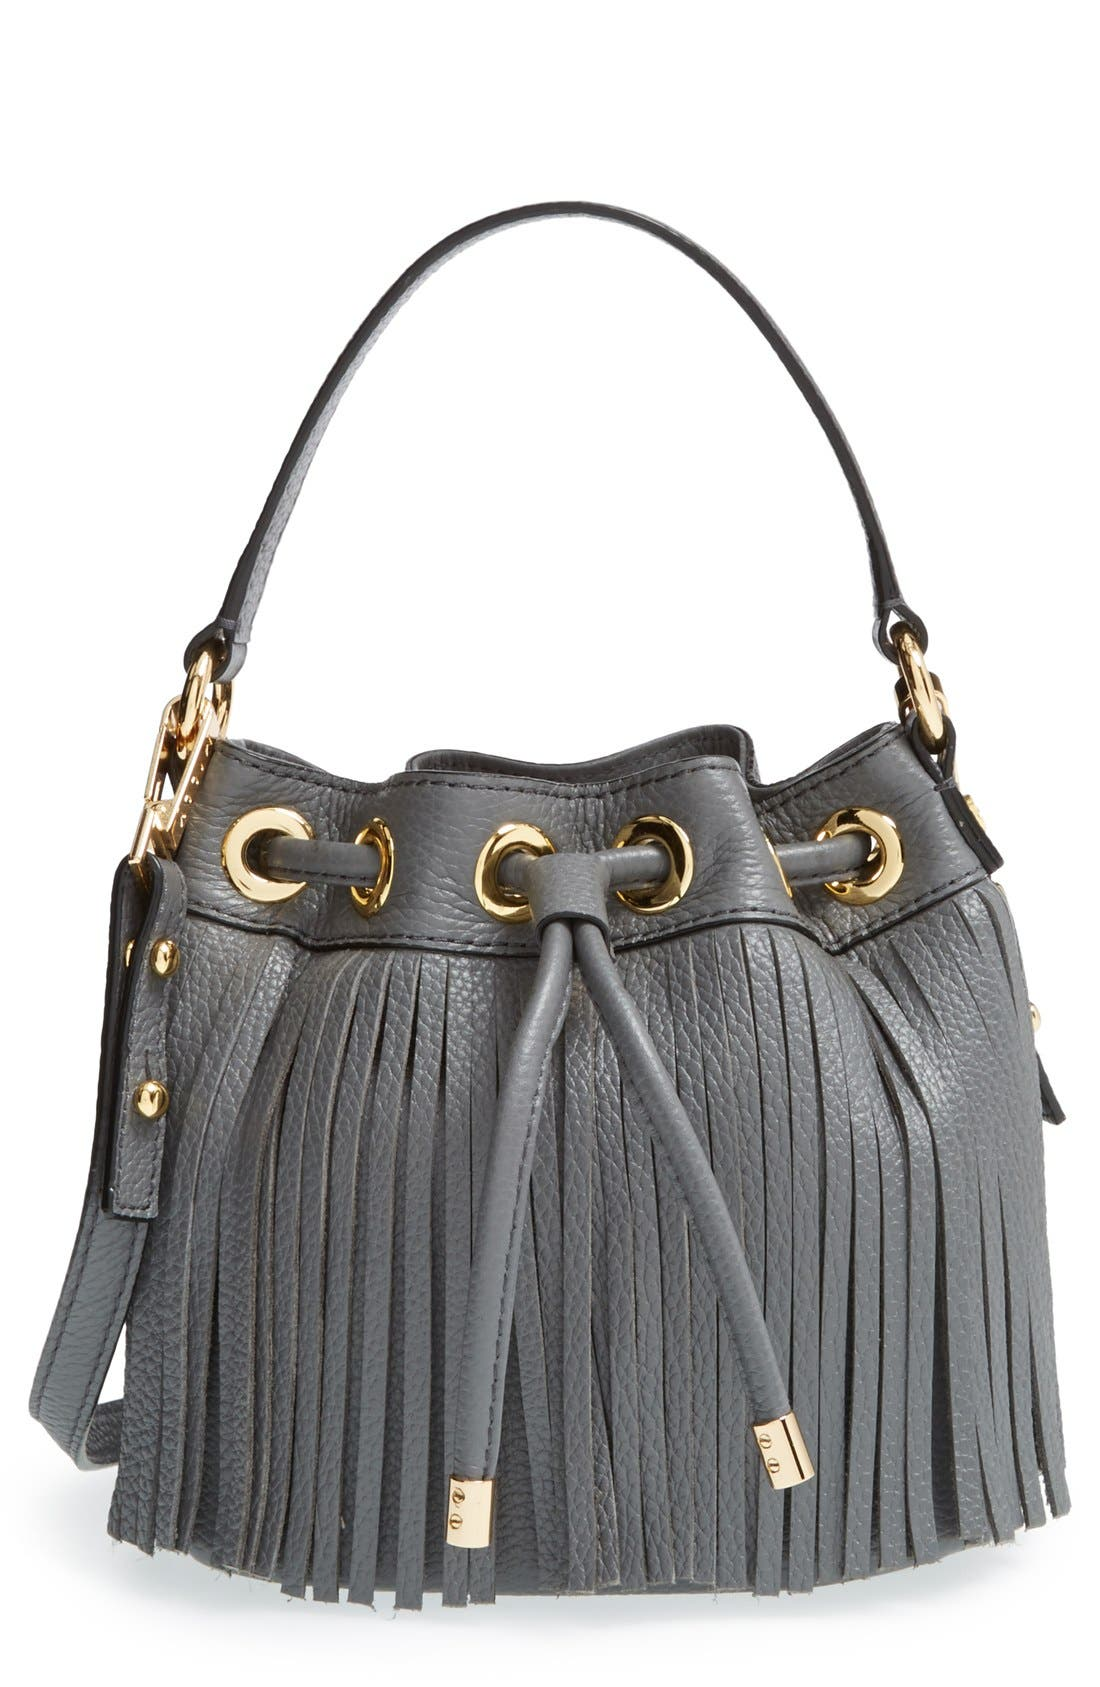 Alternate Image 1 Selected - Milly 'Small Essex' Fringed Leather Drawstring Bag